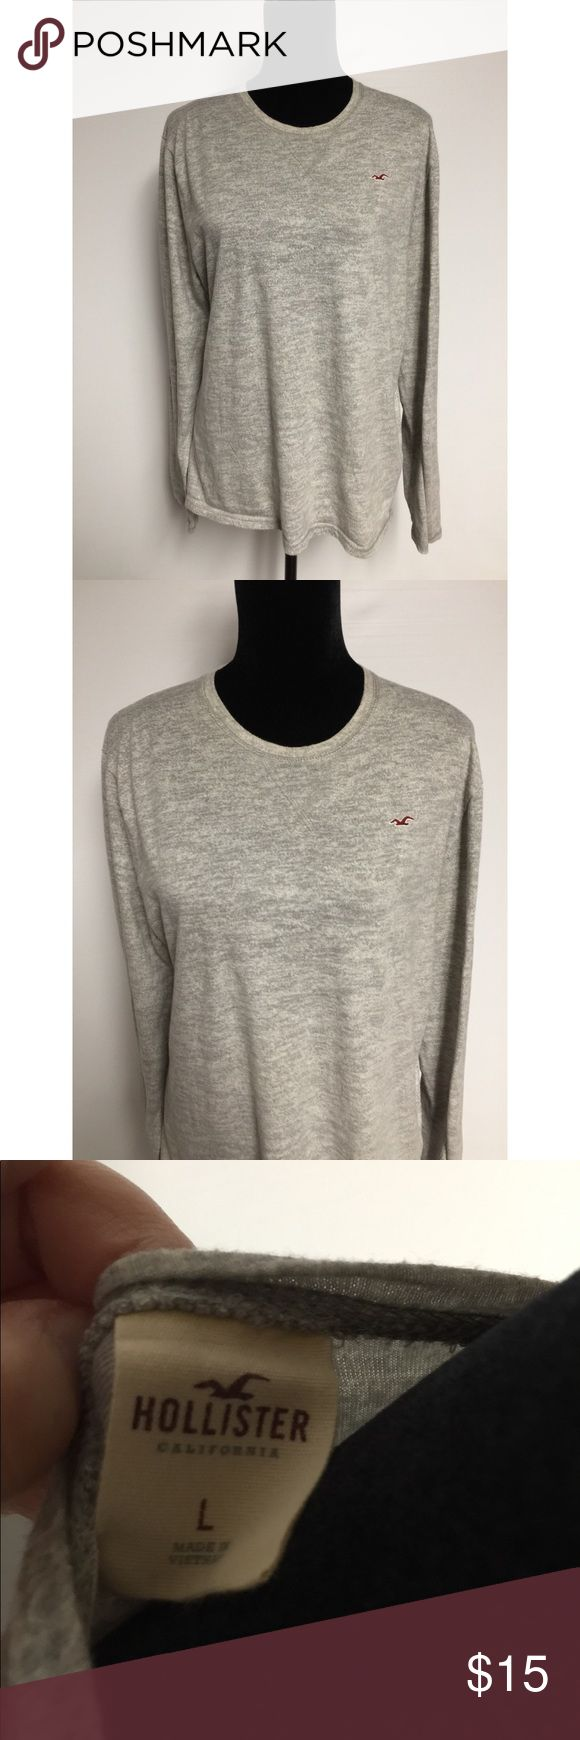 Hollister men's long sleeve top size Large Gently worn hollister men's long sleeve top size large, no stains, rips or tears, light weight  and comfy  Pet/smoke free home Hollister Shirts Tees - Long Sleeve